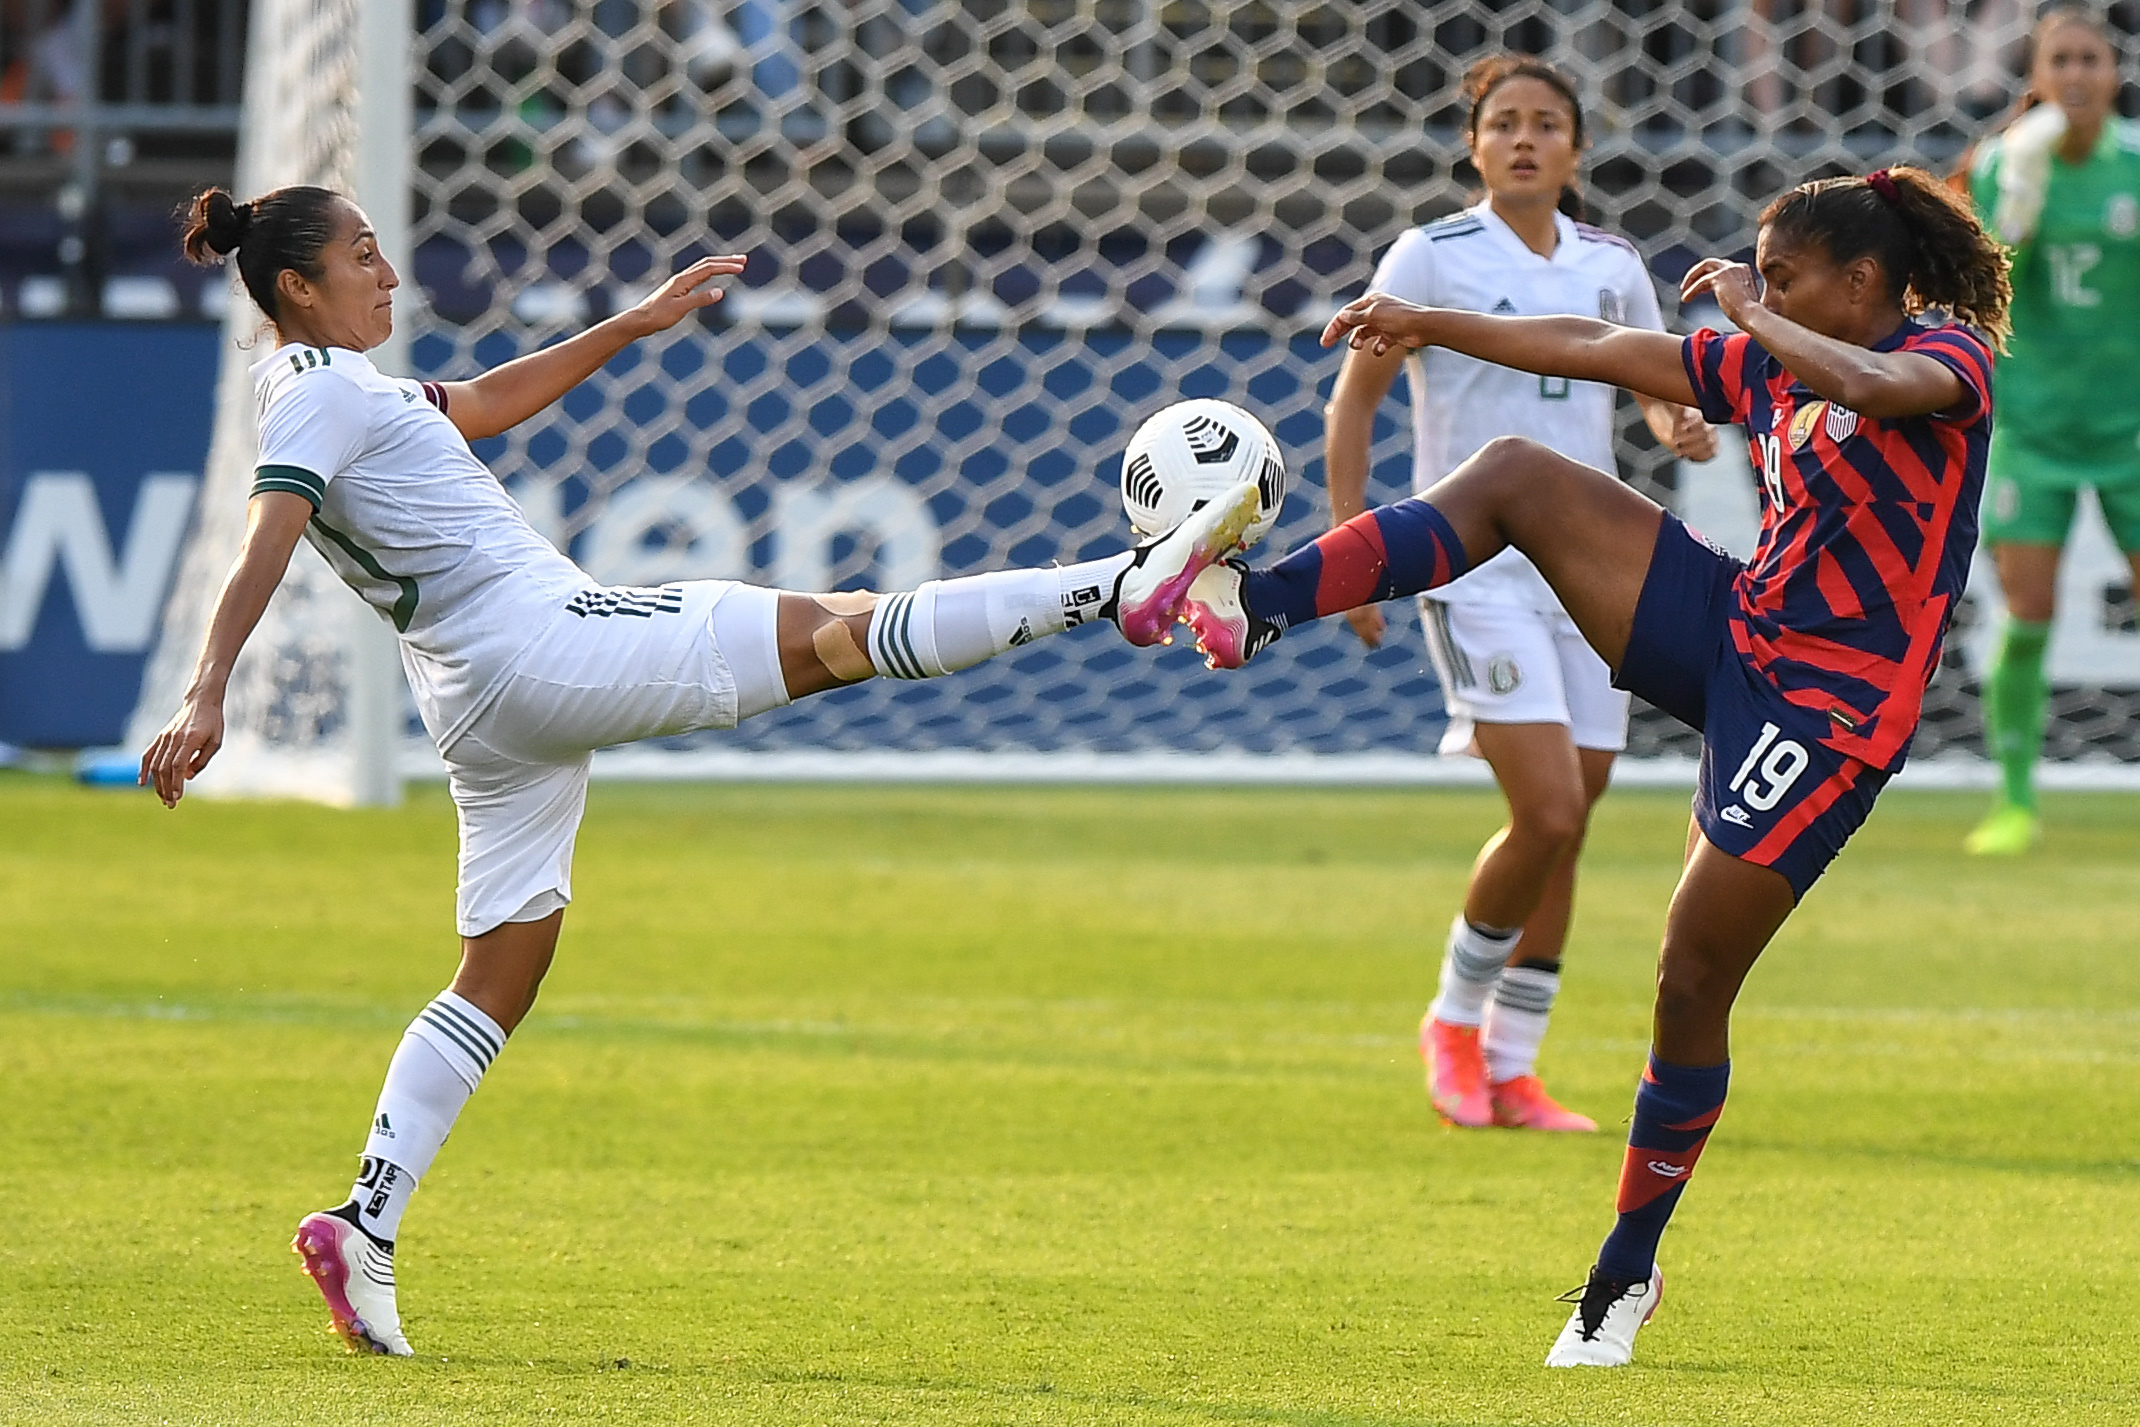 Soccer: 2021 U.S. Women's National Team Send-off Series-Mexico at USA